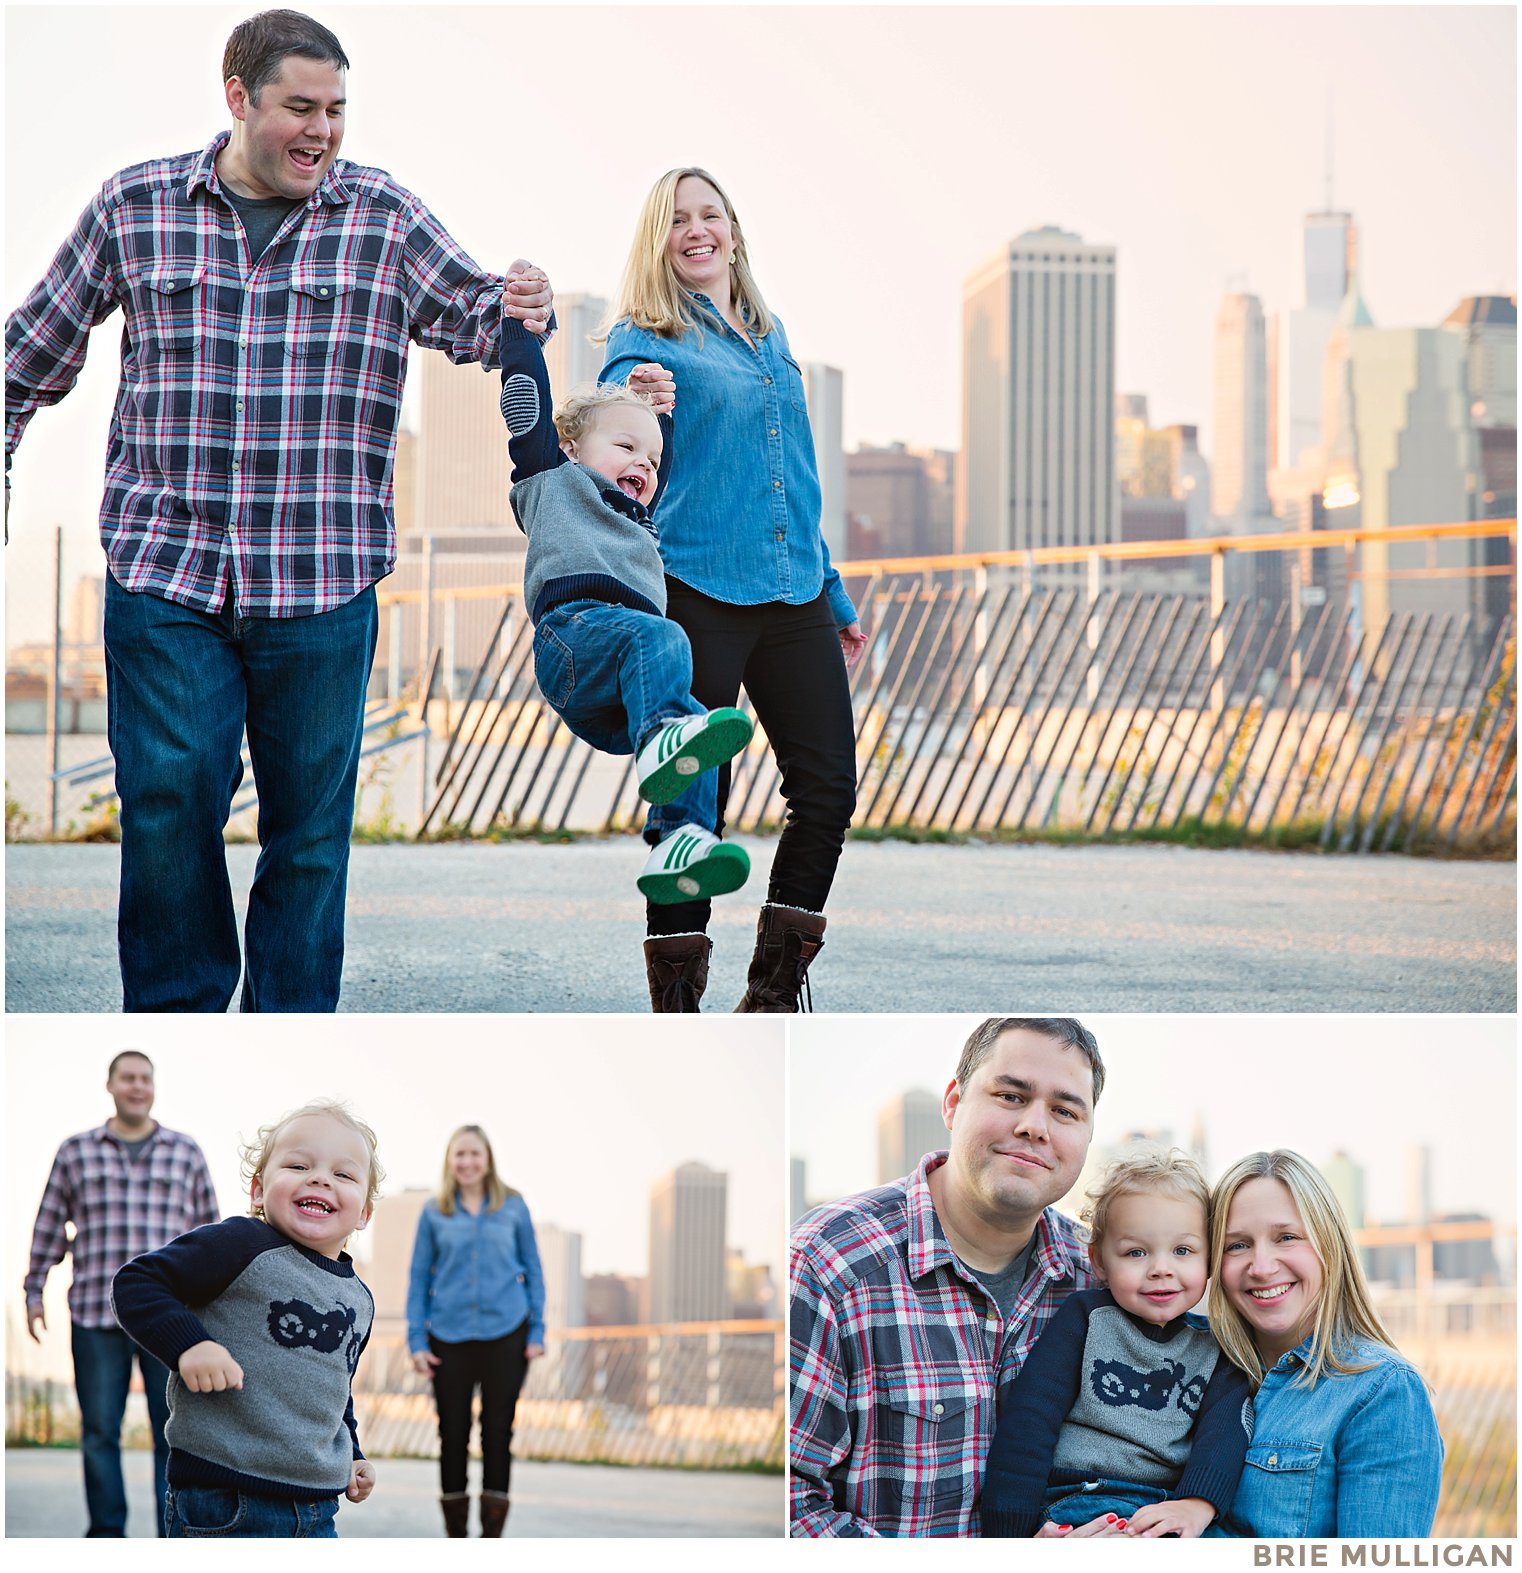 Brie-Mulligan-NYC-Family-Photographer